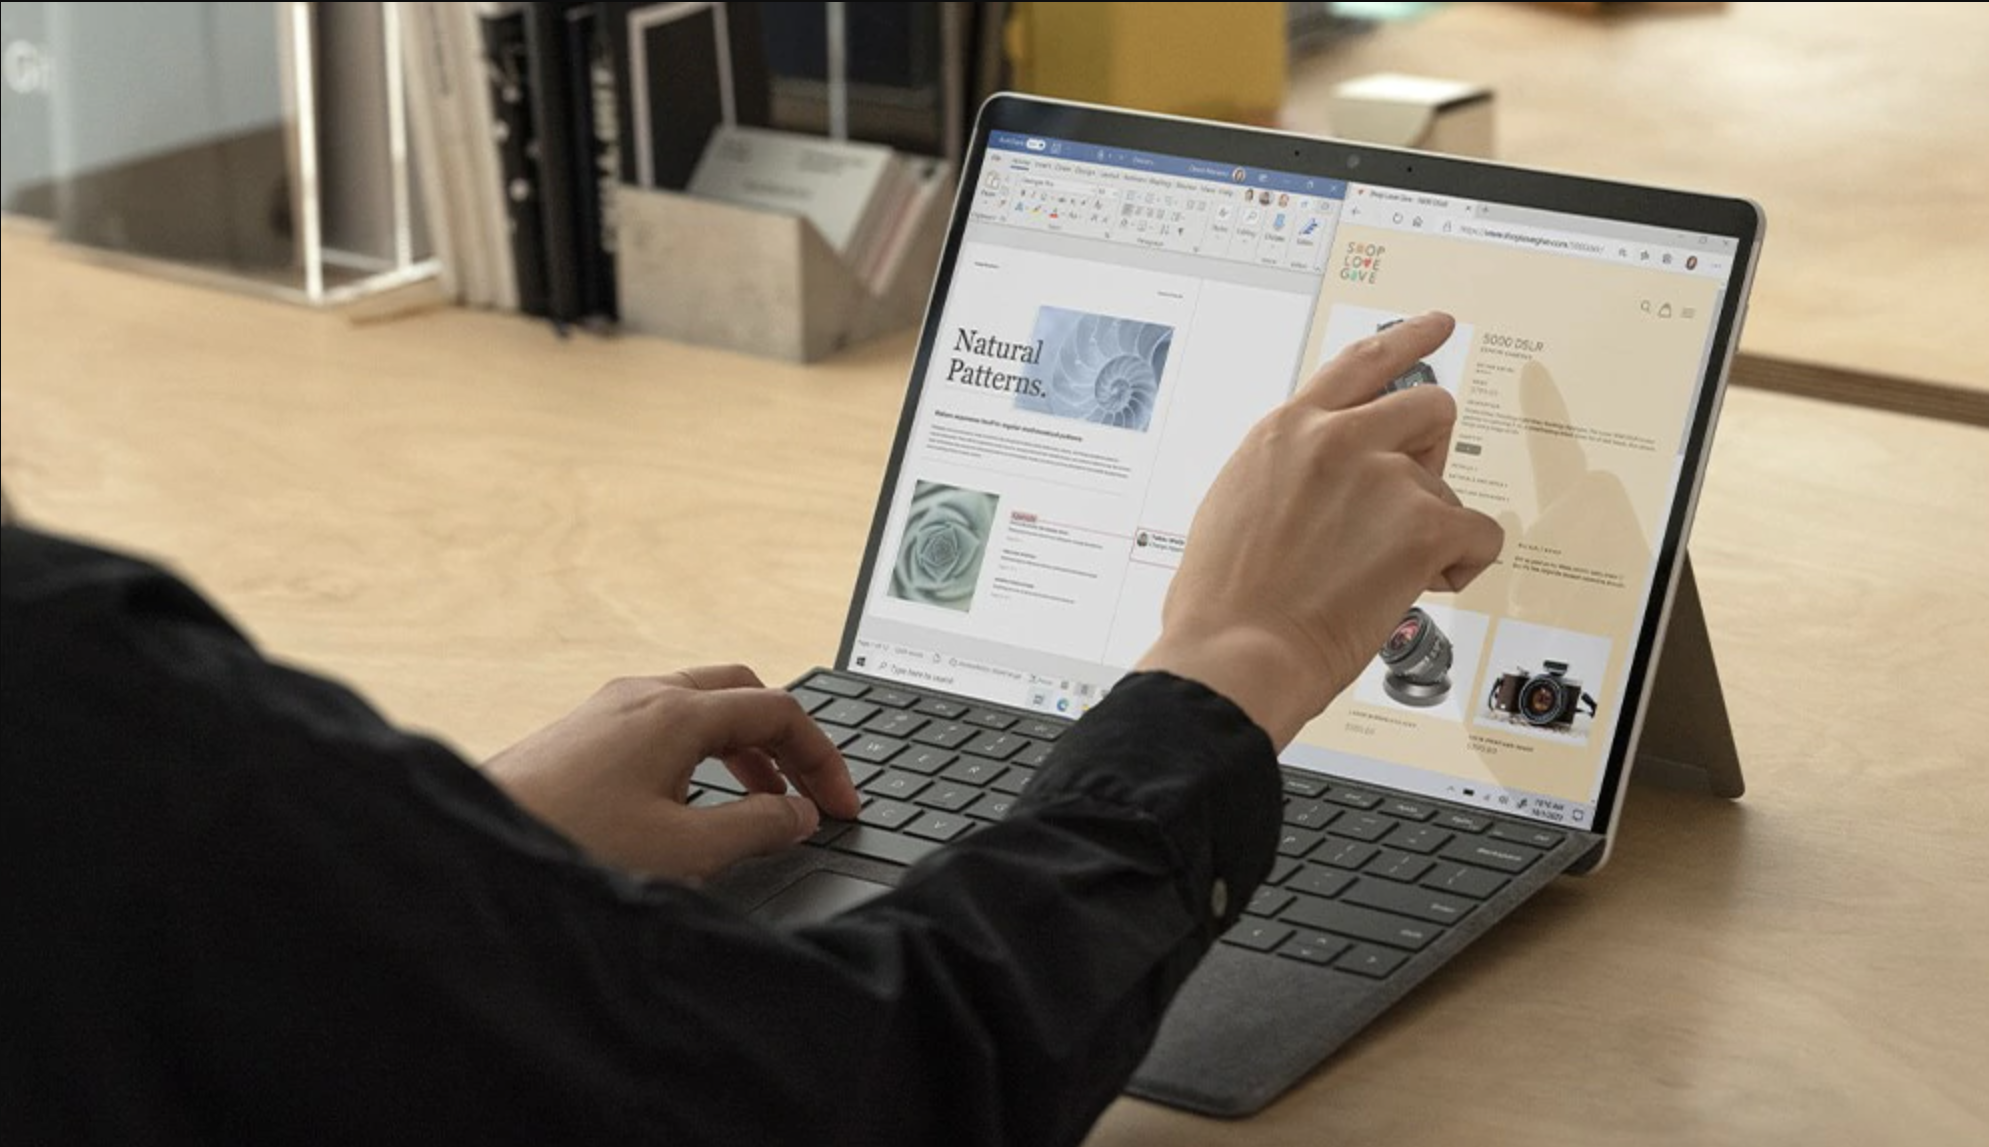 Microsoft Surface is 8 years old – and the high-end laptop brand is bigger than ever thumbnail